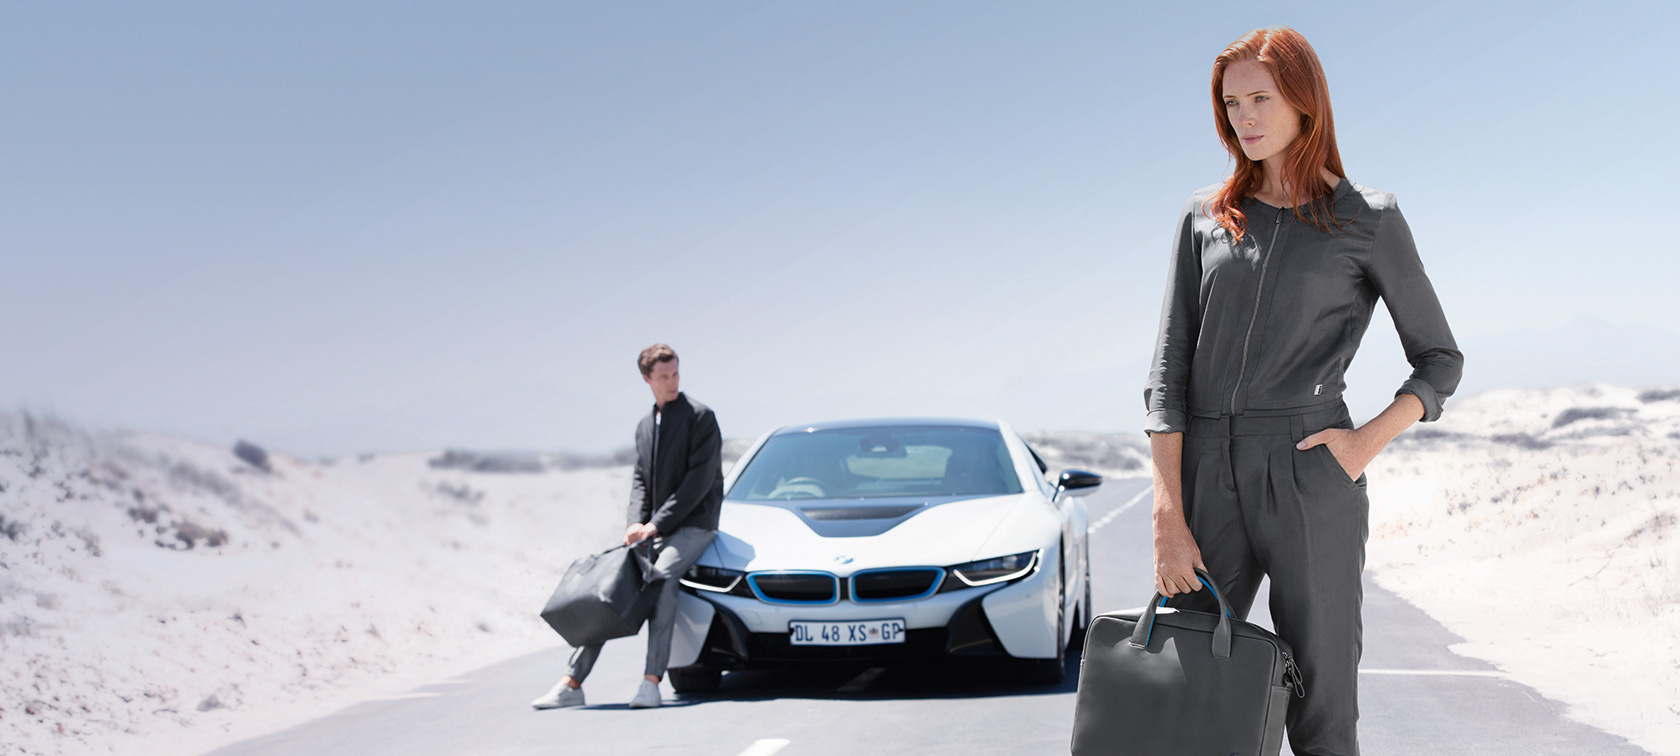 Welcome to BMW Lifestyle